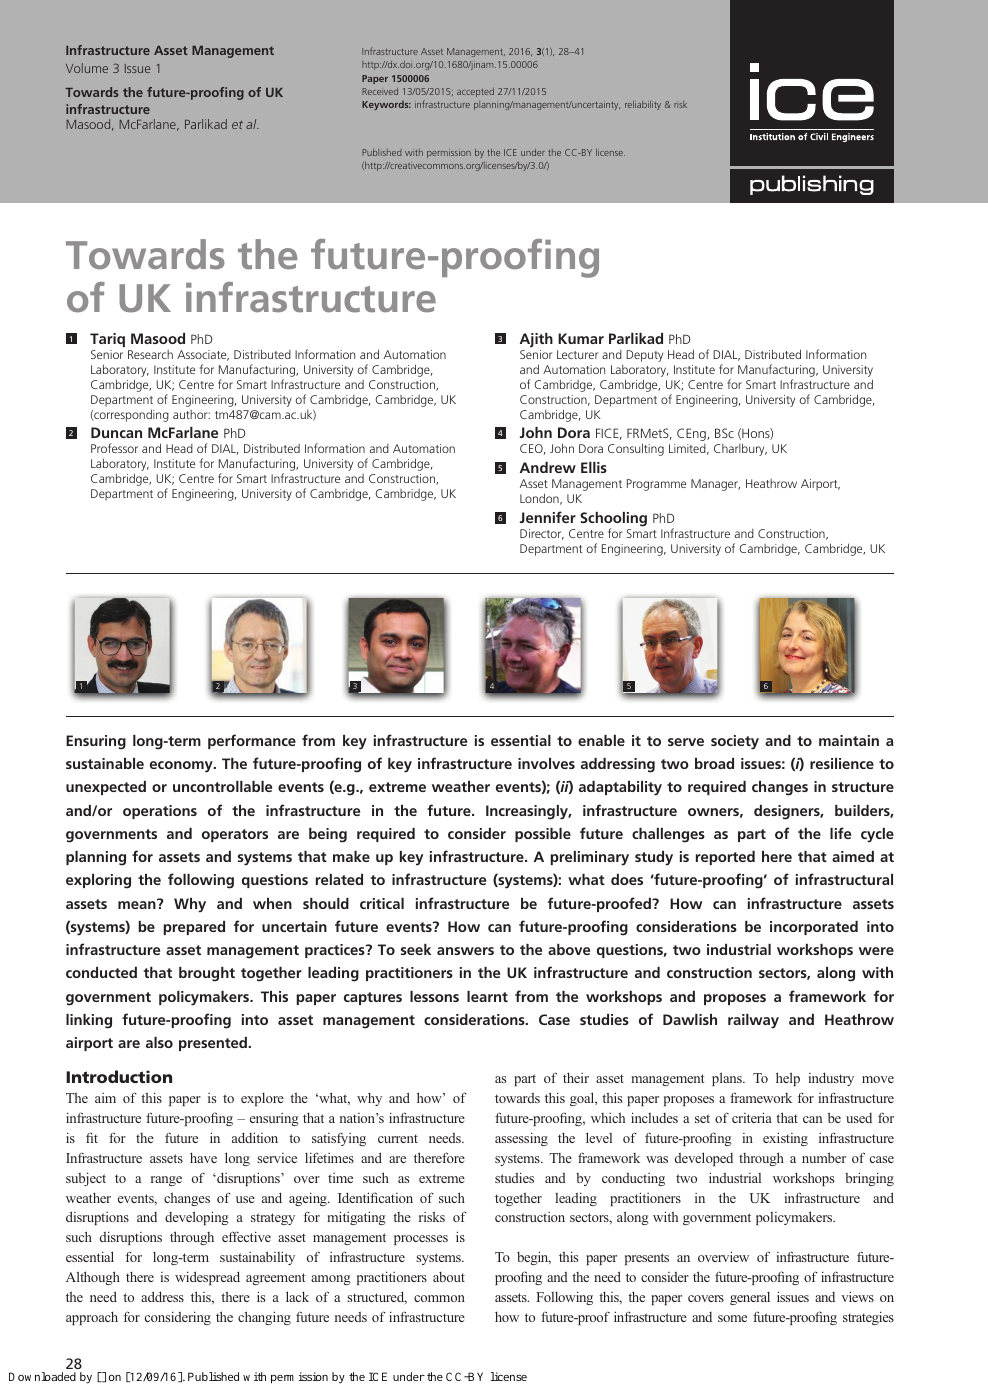 Towards the future-proofing of UK infrastructure – topic of research